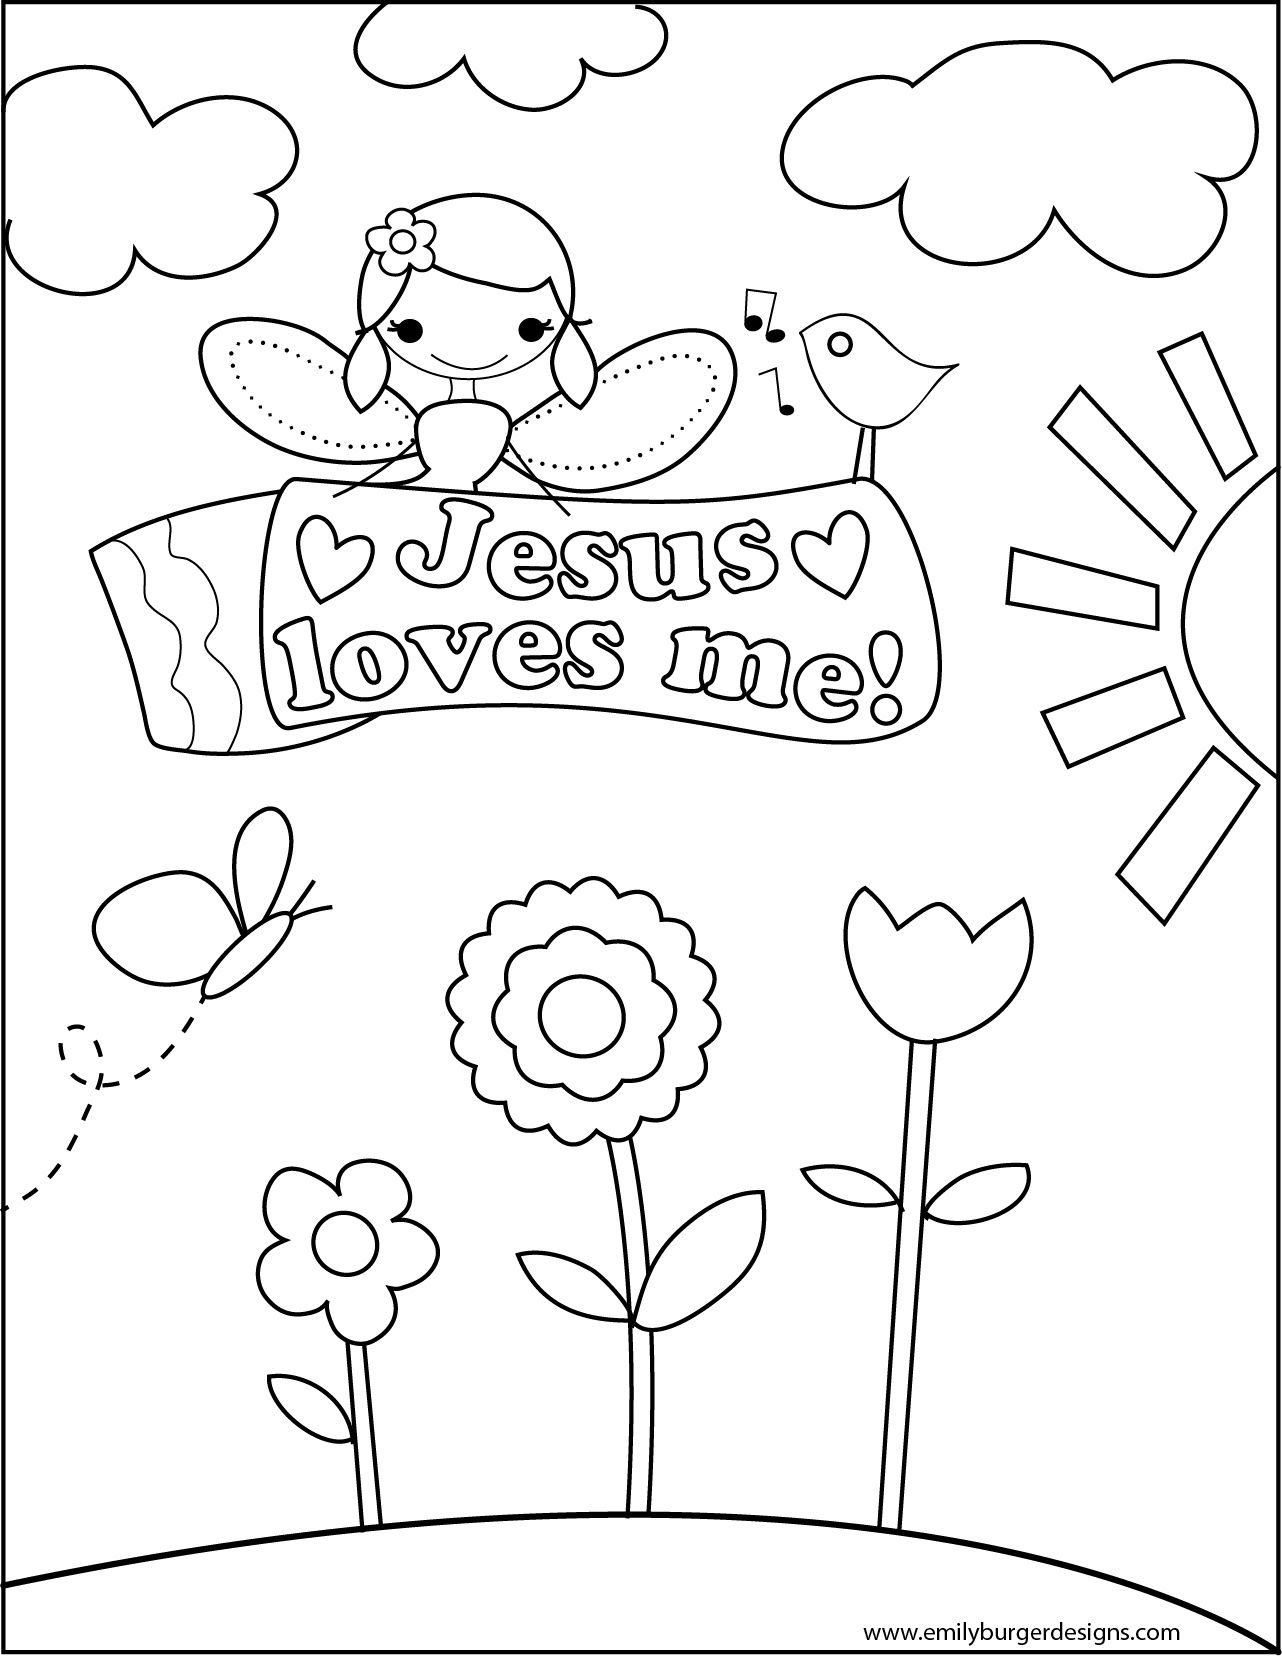 Coloringsheetjesuslovesmegirlg Sunday School Coloring